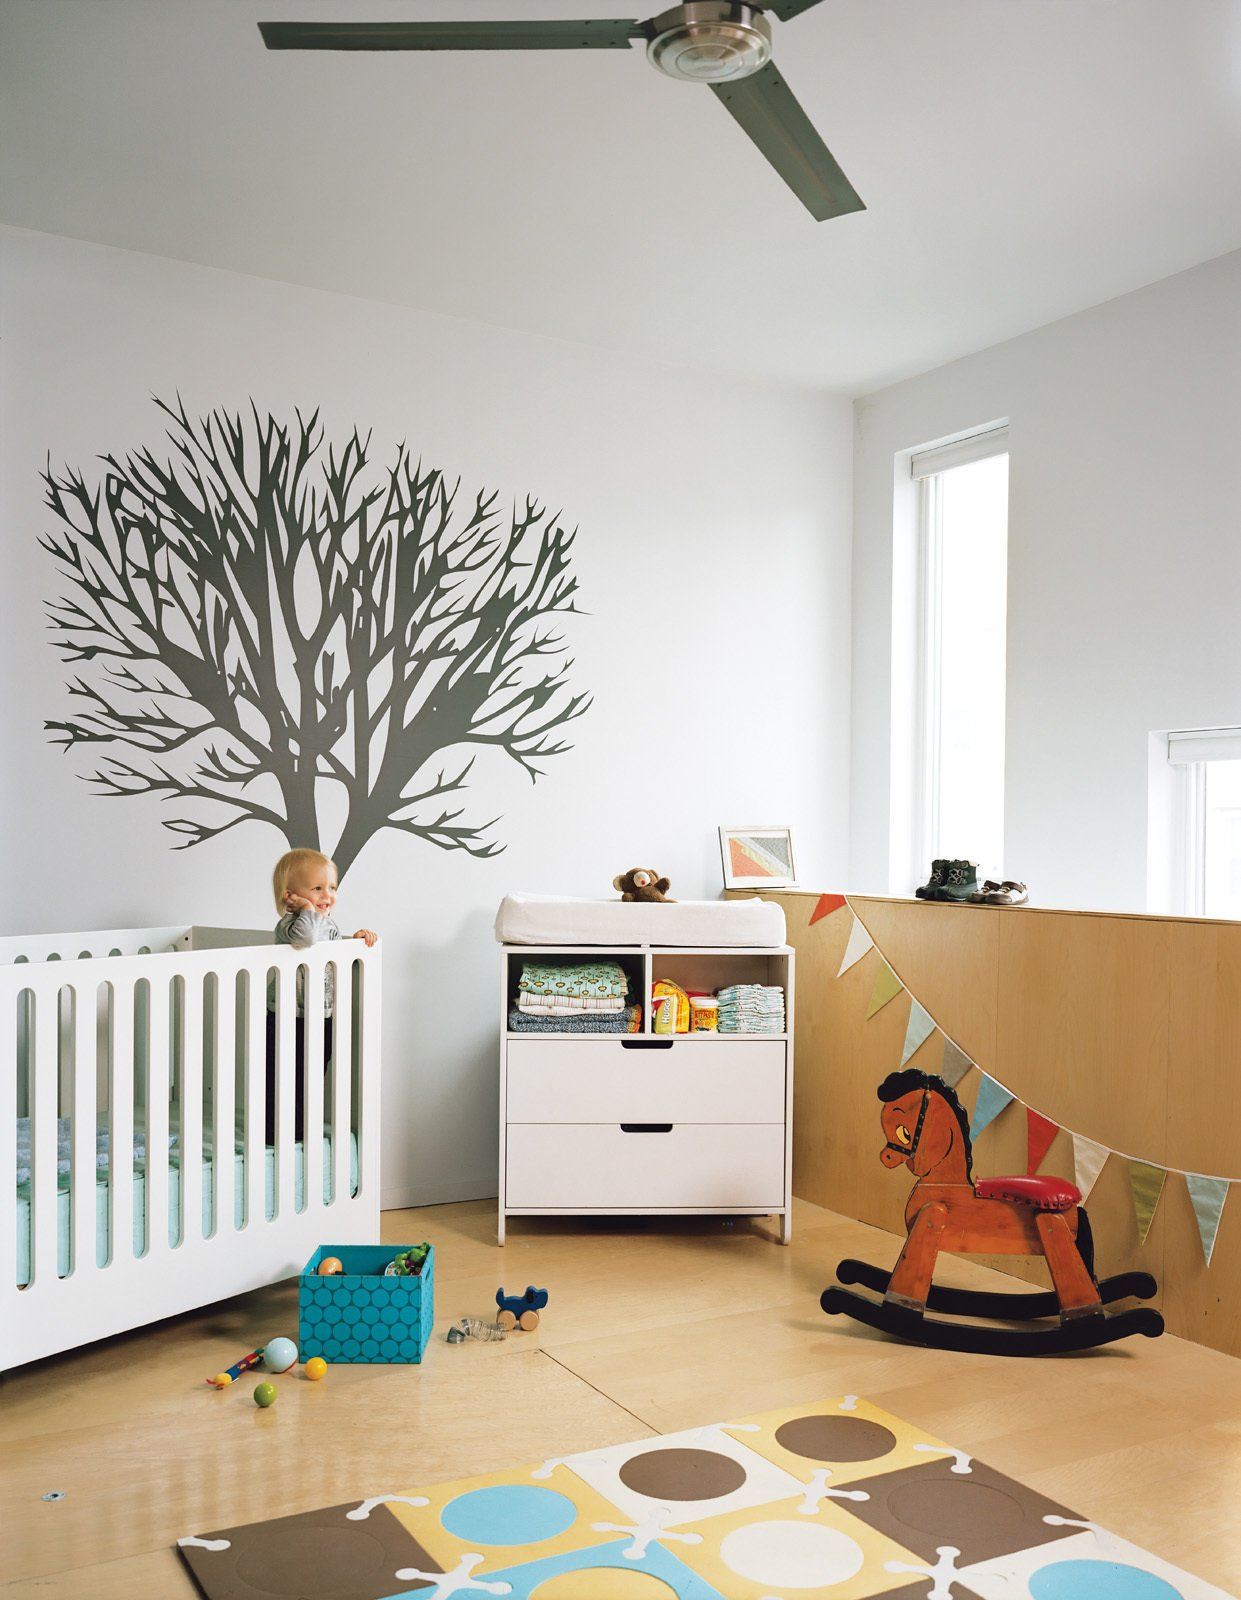 20 Cool Cribs For The Modern Ba Dwell intended for Modern Baby Bedroom